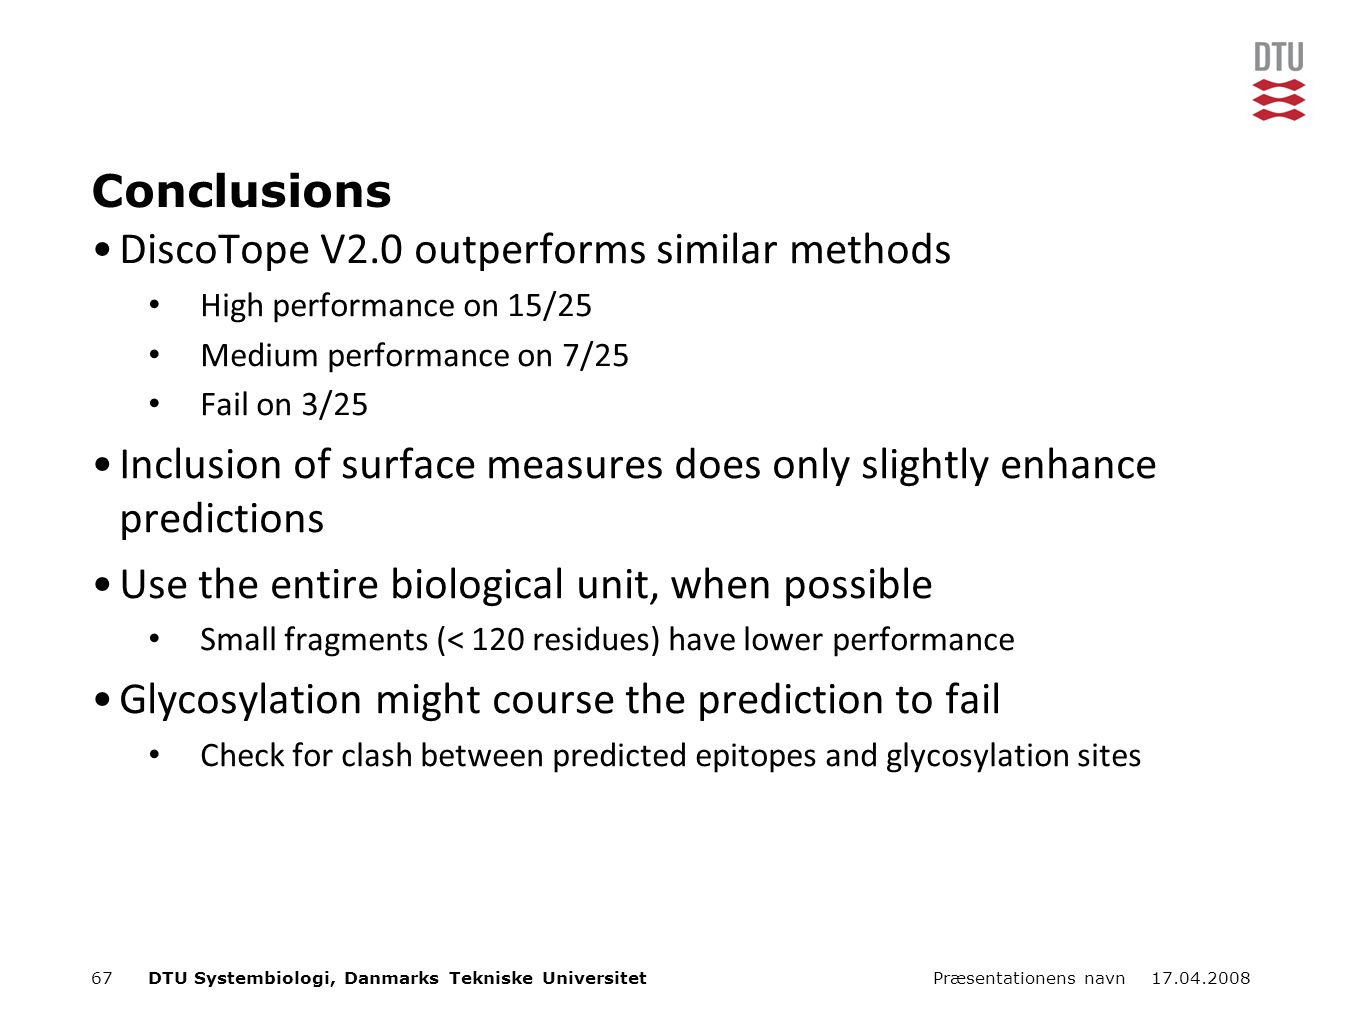 17.04.2008Præsentationens navn67DTU Systembiologi, Danmarks Tekniske Universitet Conclusions DiscoTope V2.0 outperforms similar methods High performance on 15/25 Medium performance on 7/25 Fail on 3/25 Inclusion of surface measures does only slightly enhance predictions Use the entire biological unit, when possible Small fragments (< 120 residues) have lower performance Glycosylation might course the prediction to fail Check for clash between predicted epitopes and glycosylation sites